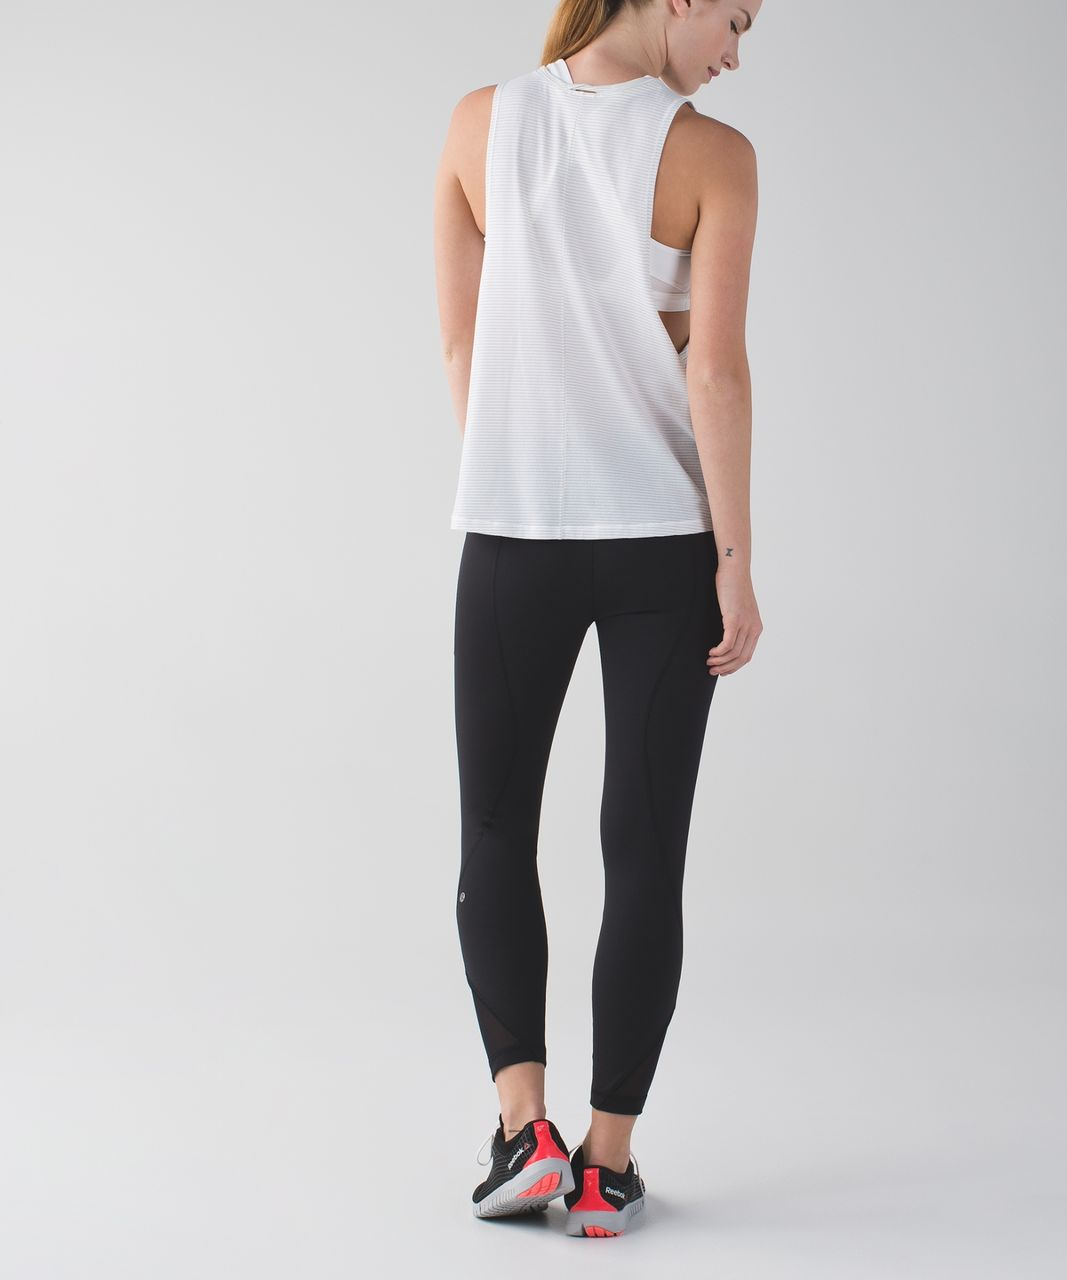 Lululemon Inspire Tight II (Mesh) - Black